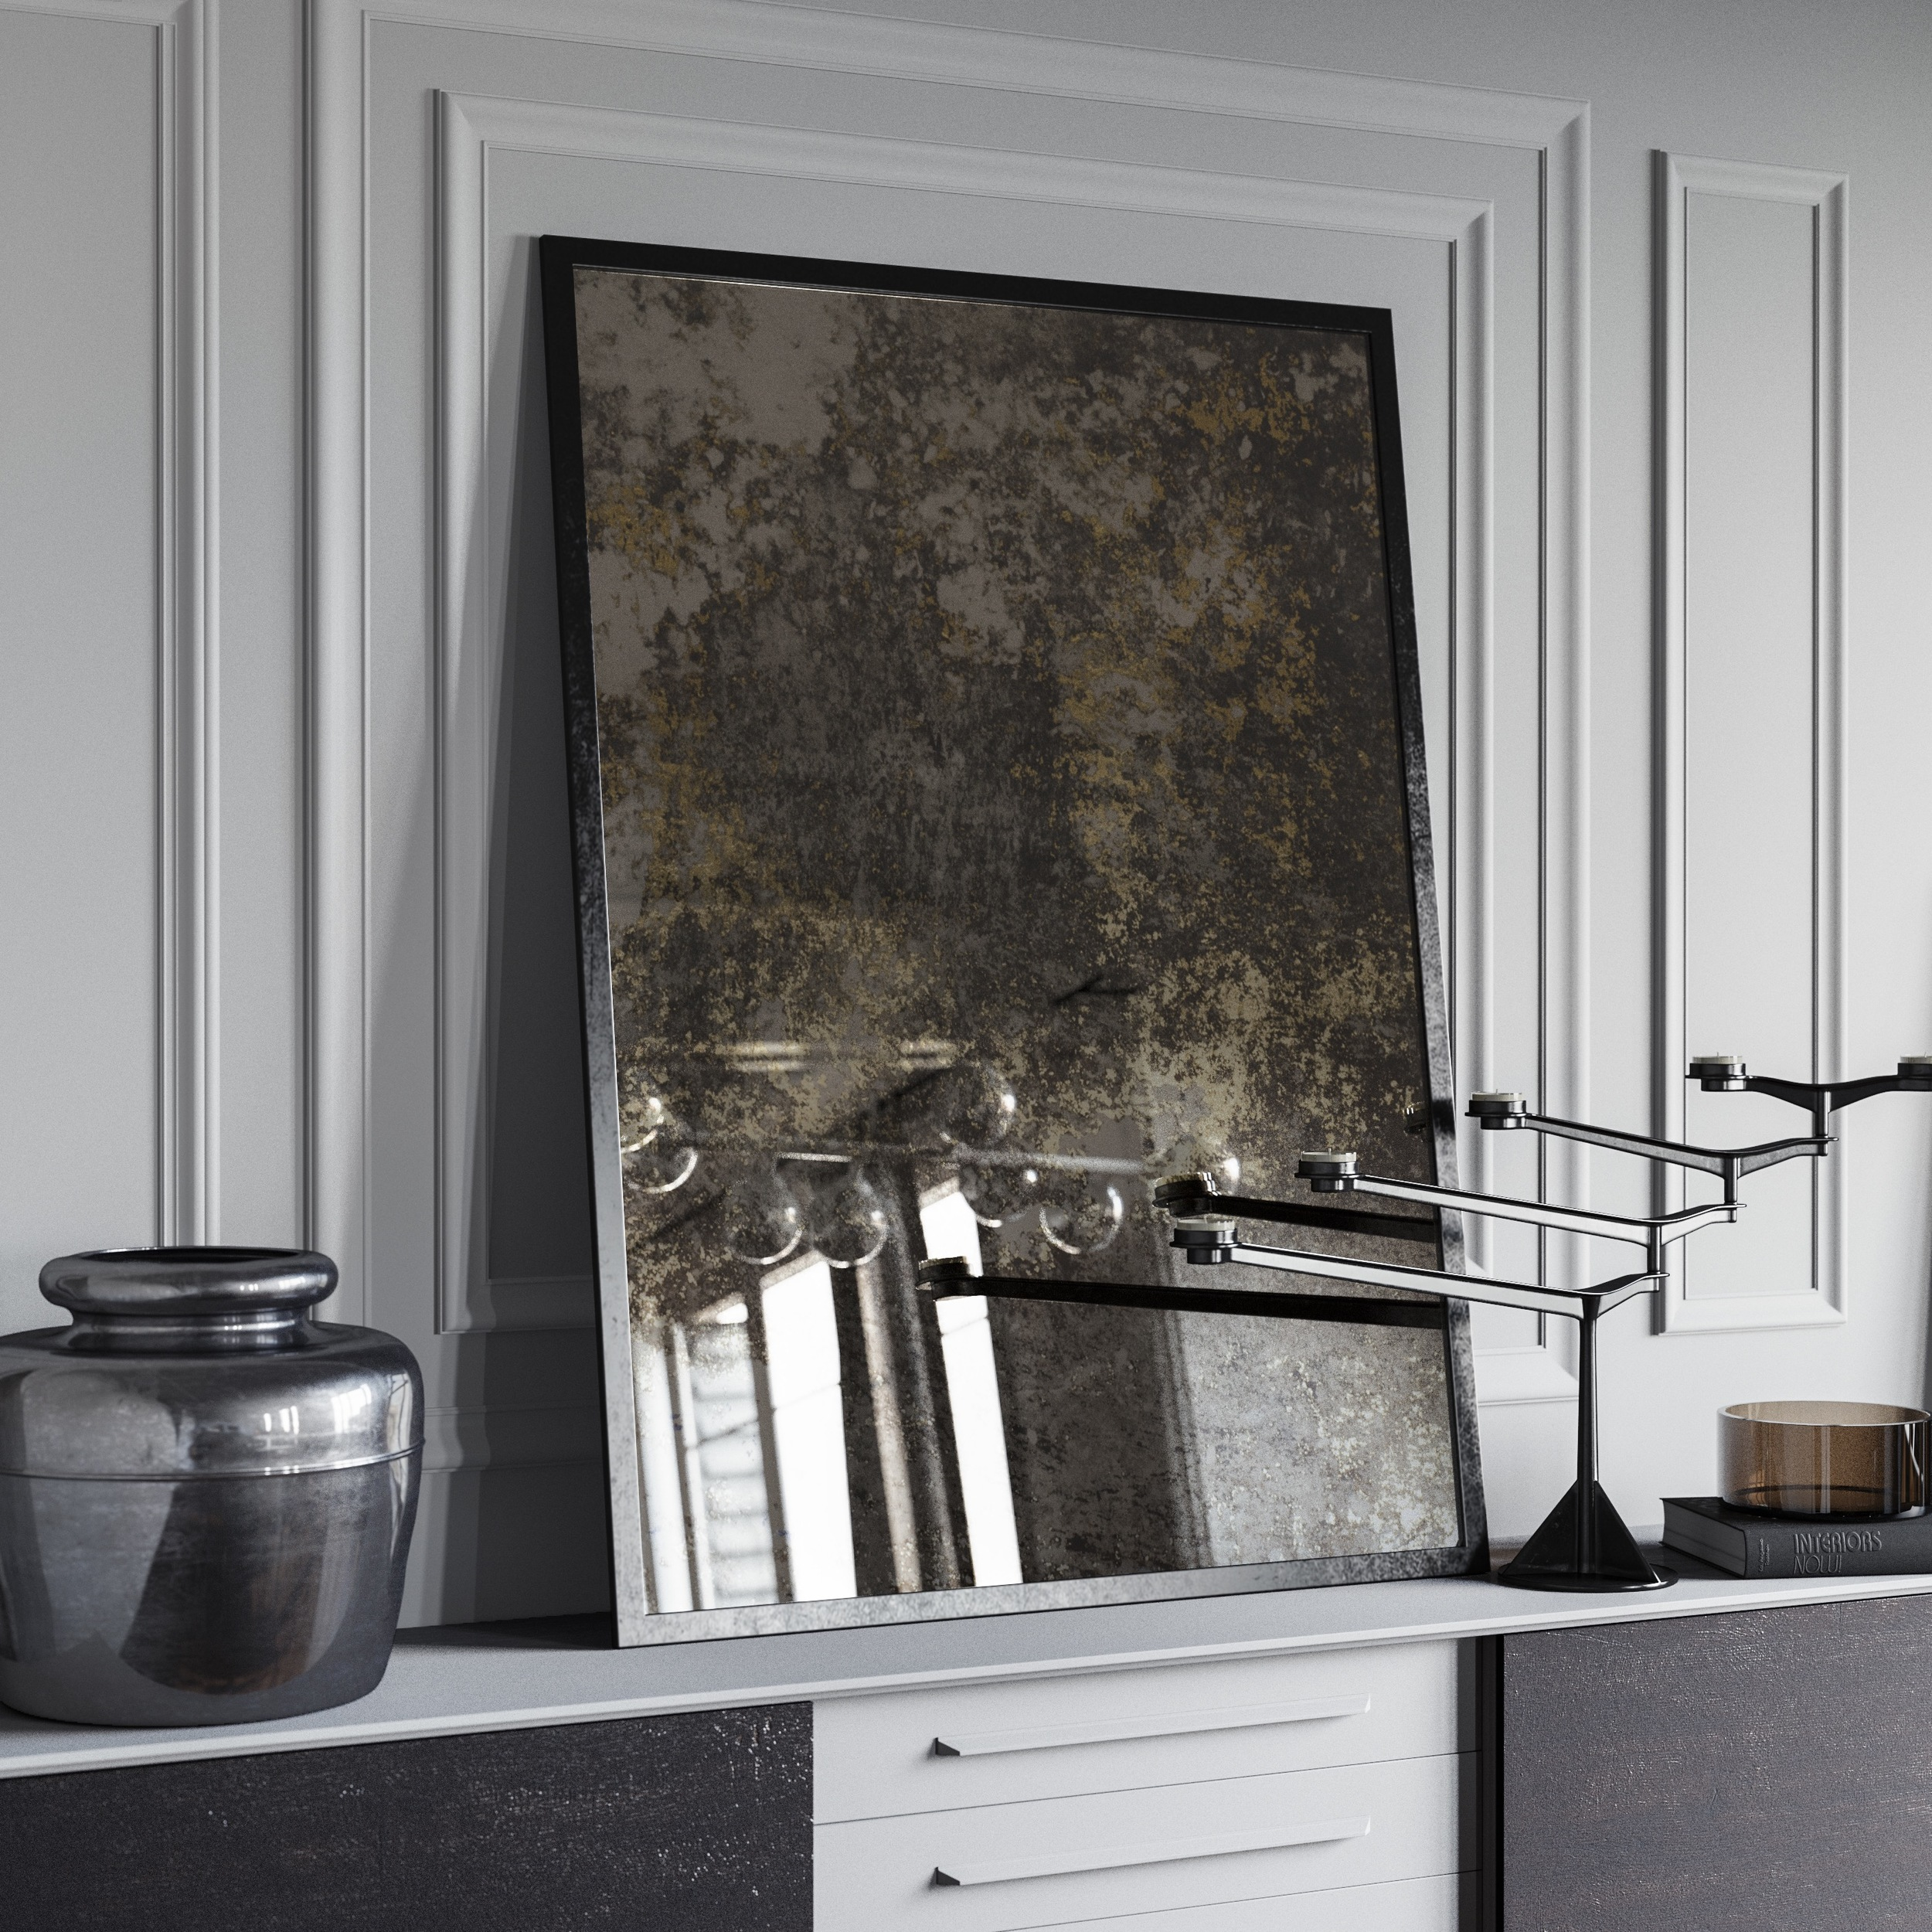 Side view of framed wall mirror